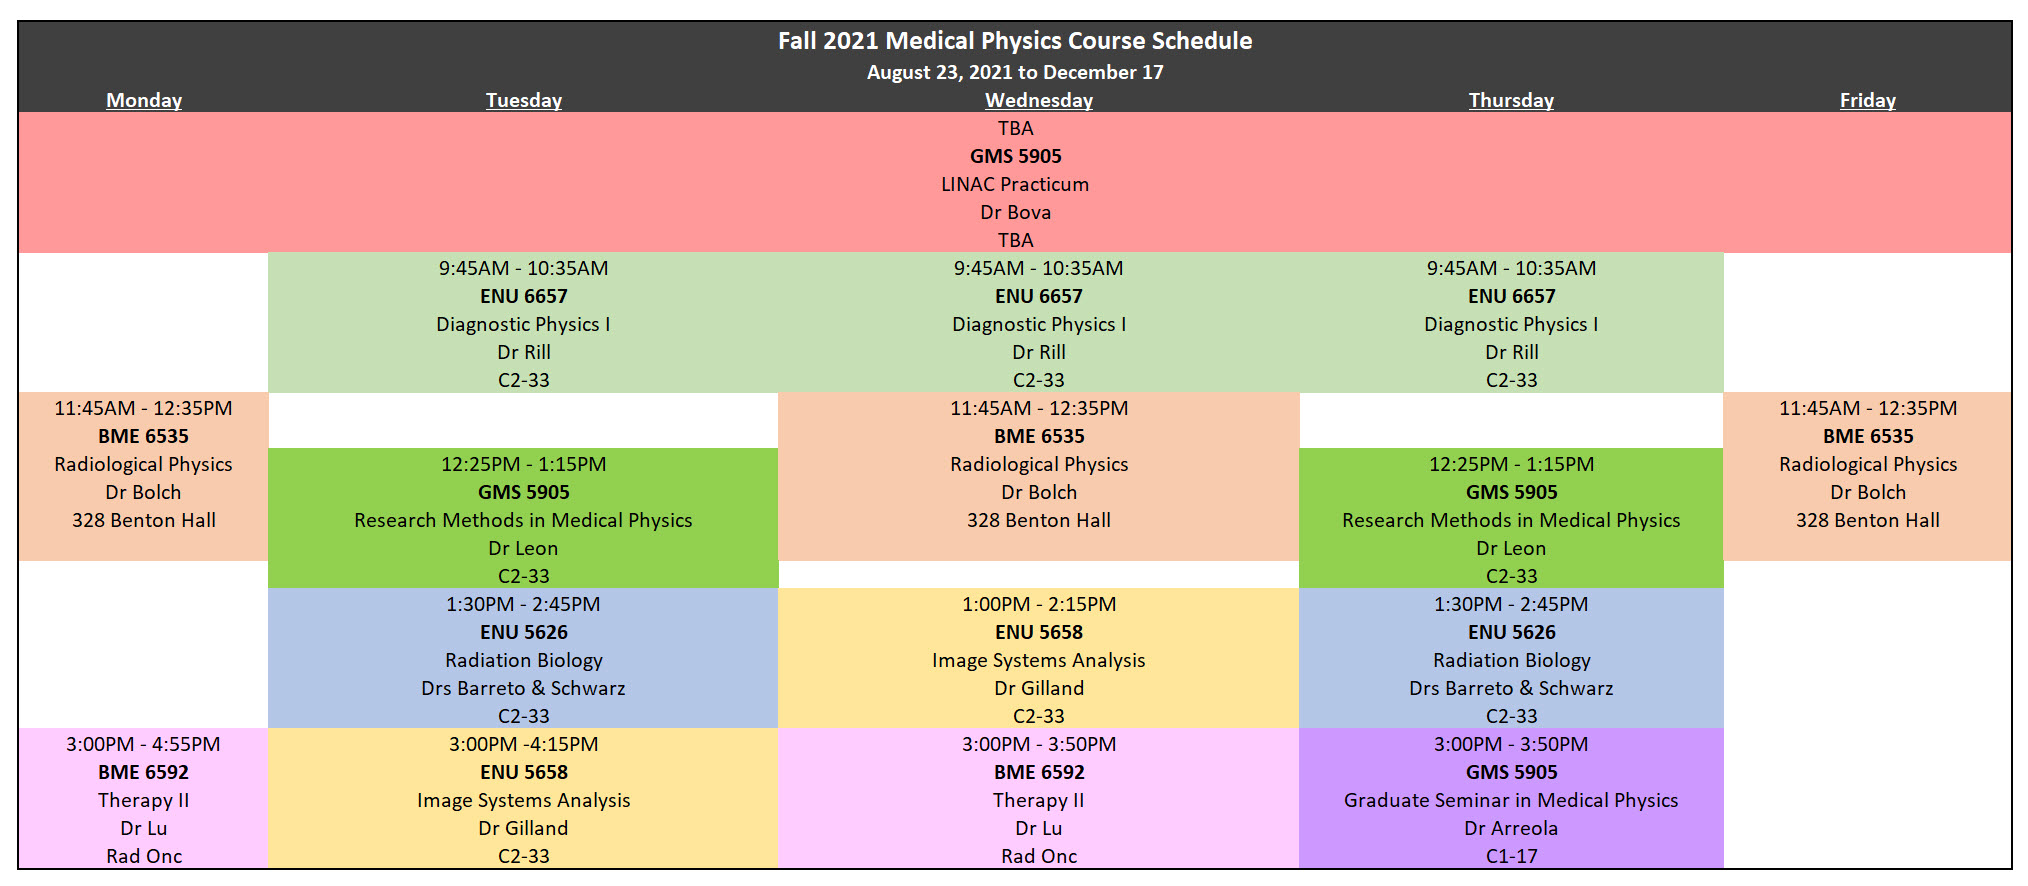 Revised Fall 2021 Schedule